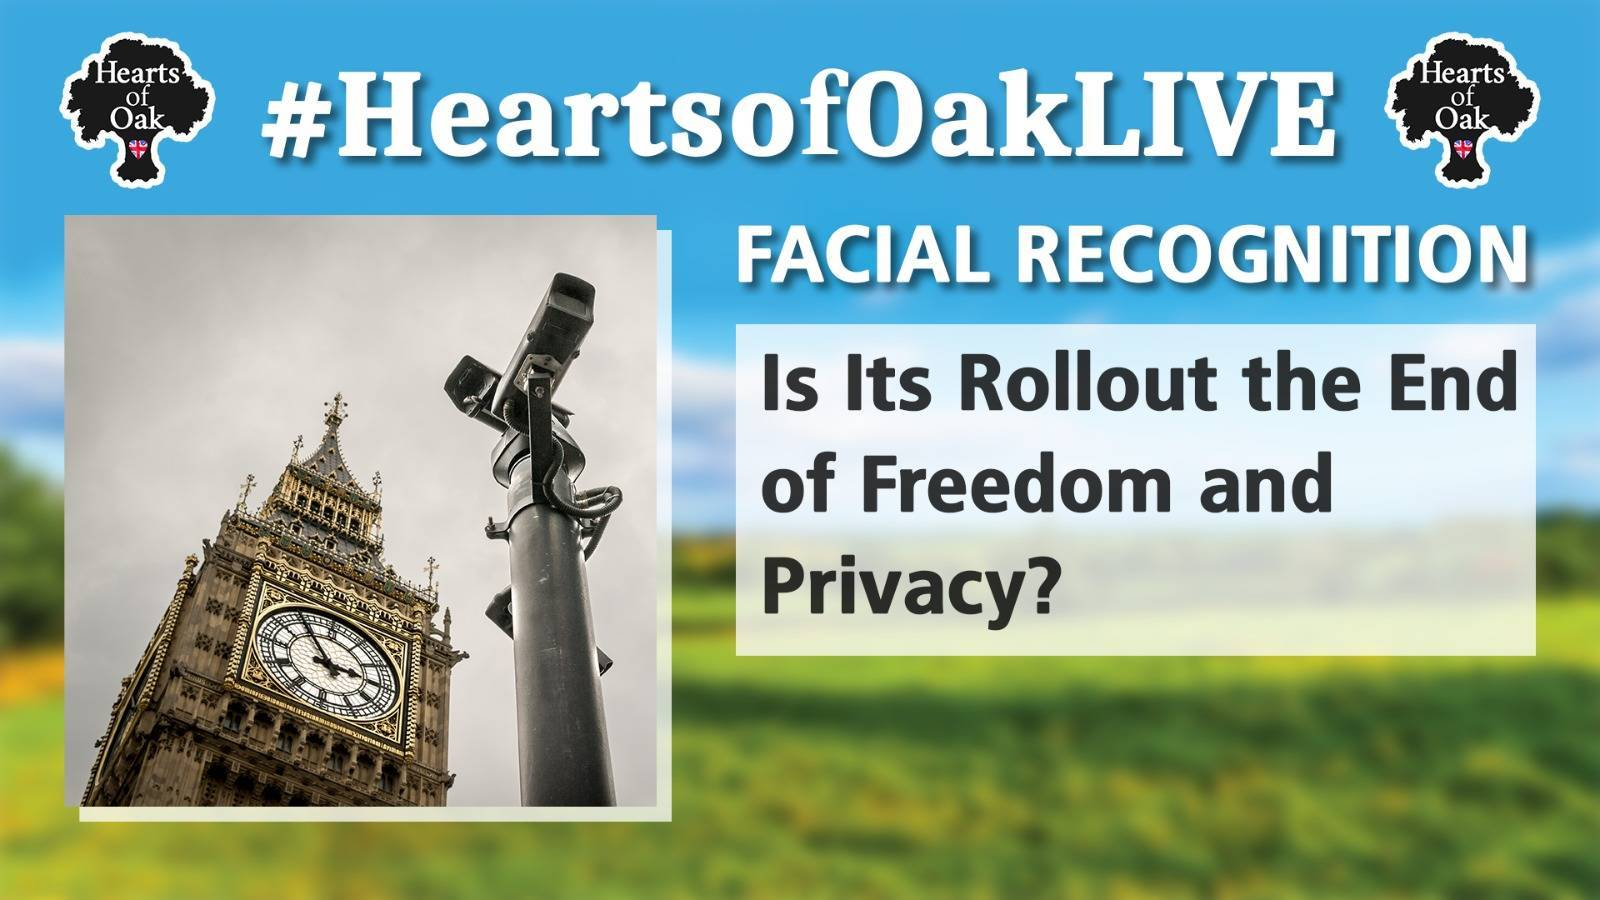 Facial Recognition: Is Its Rollout the End of Freedom and Privacy?